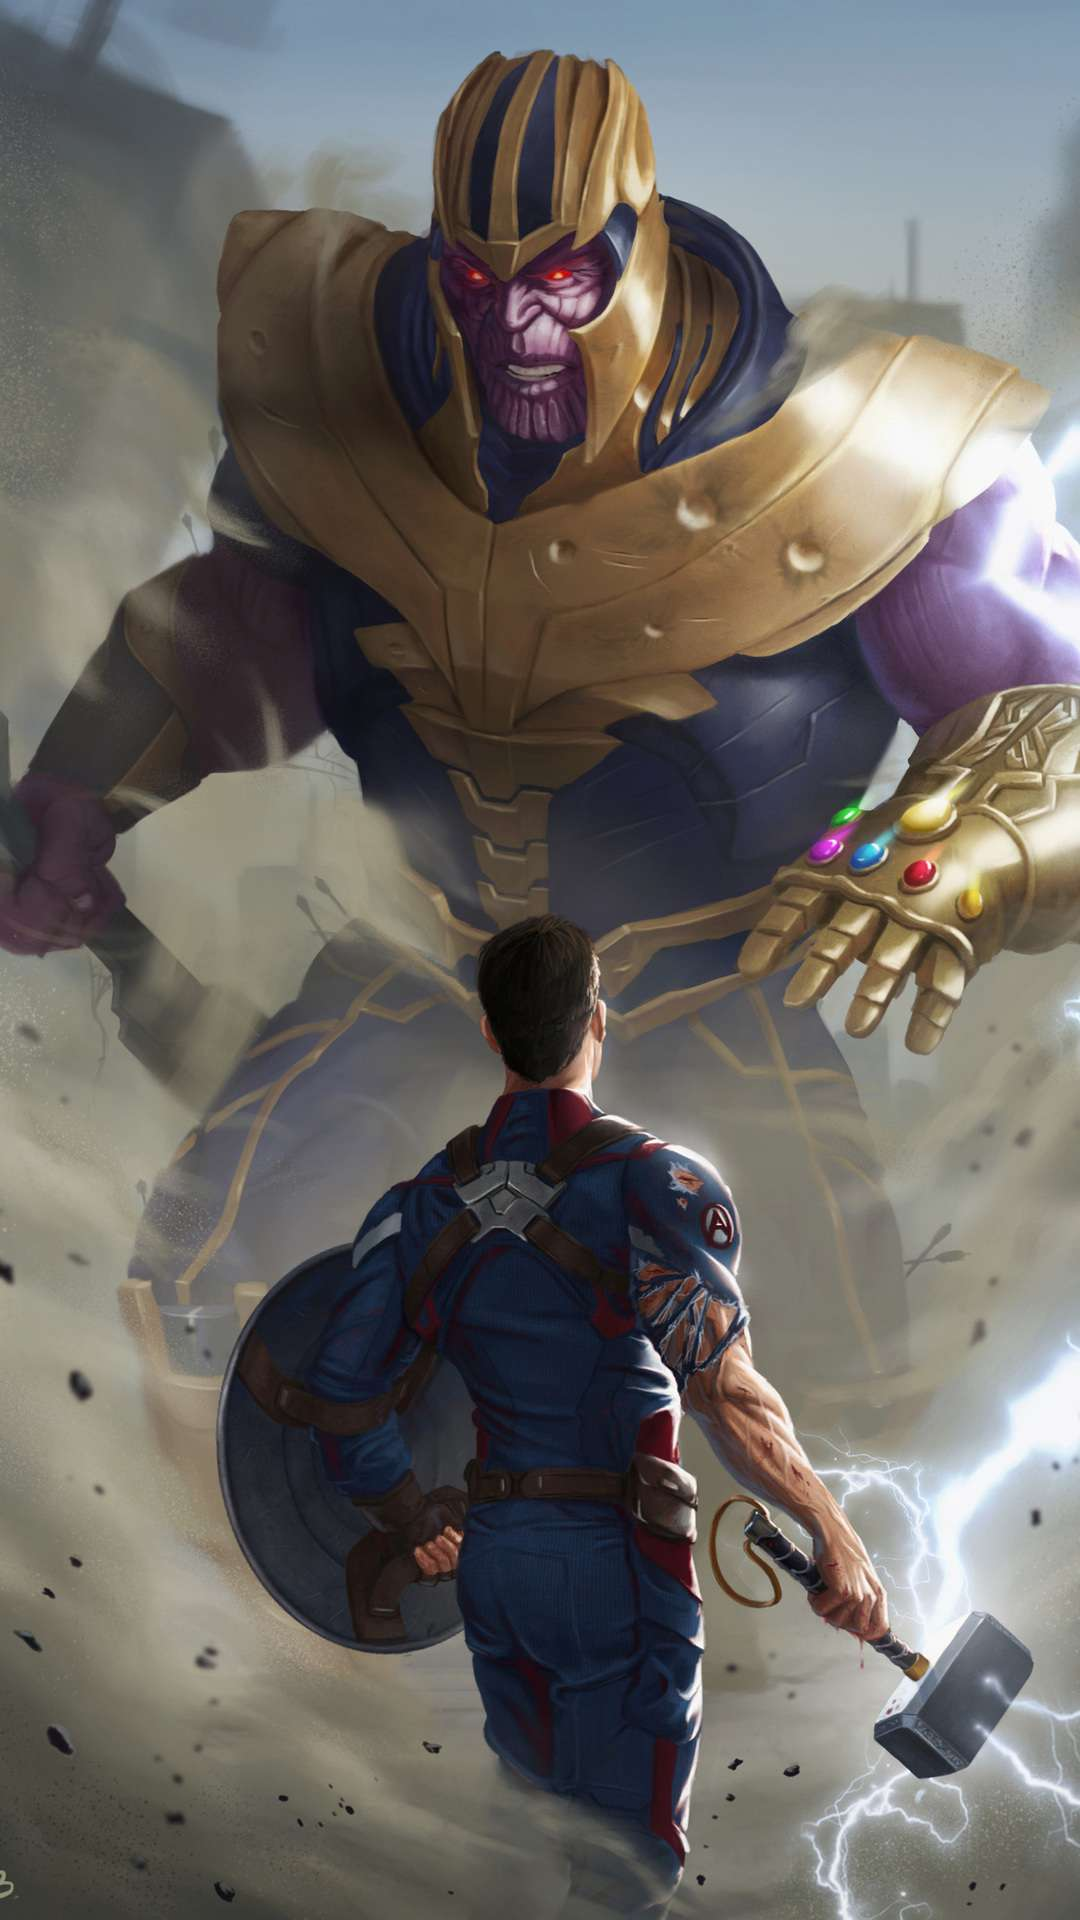 Captain America with Thor Hammer Fighting Thanos iPhone Wallpaper